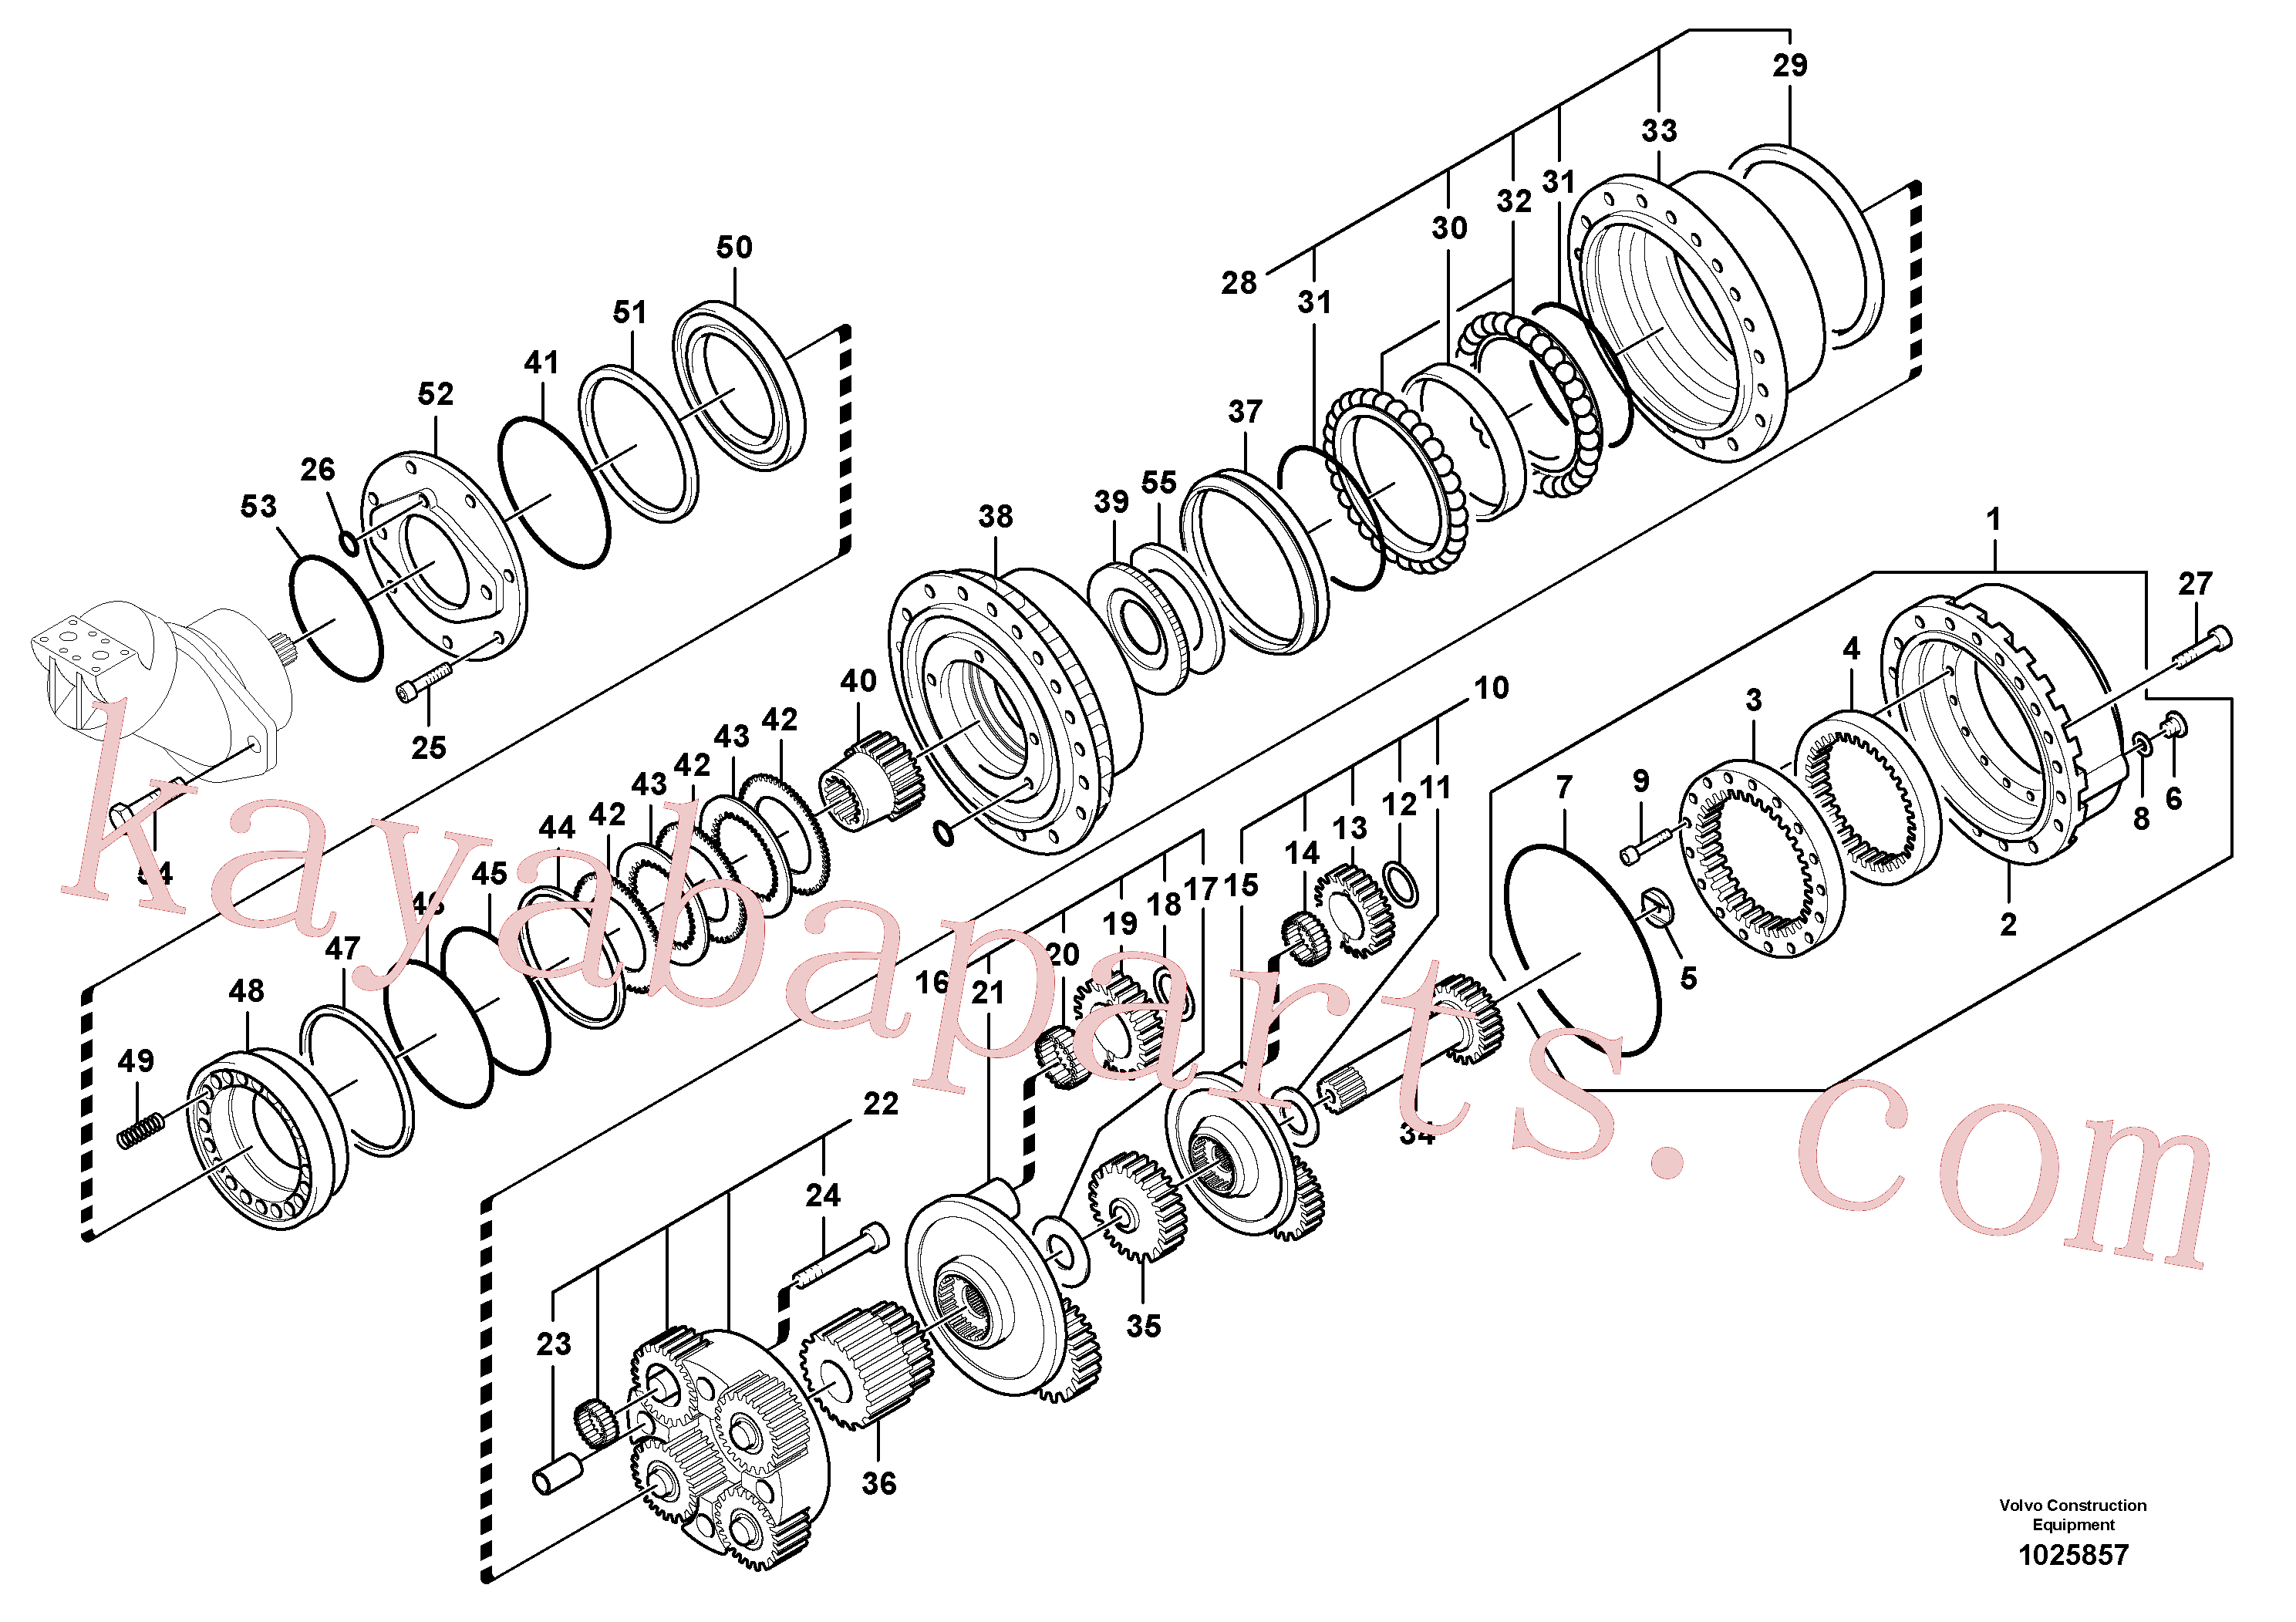 VOE14541738 for Volvo Travel gearbox(1025857 assembly)